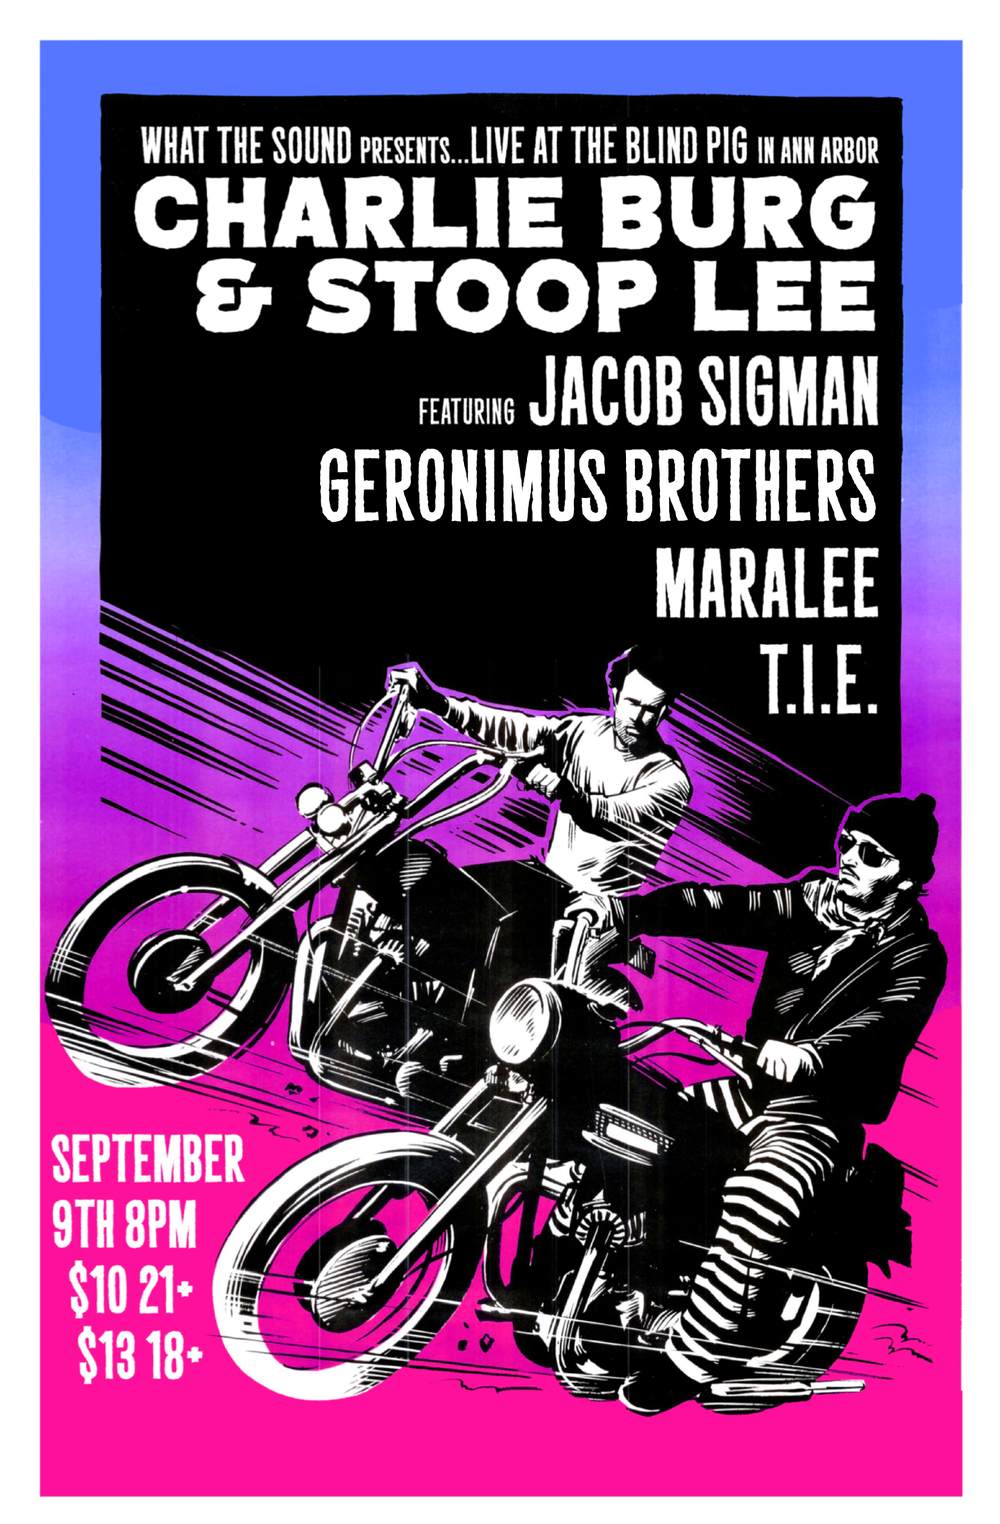 Charlie Burg & Stoop Lee / Jacob Sigman / Geronimus Brothers / mAraLee / T.I.E. - Artwork by Ben Redder  September 9th, 2016 at Blind Pig